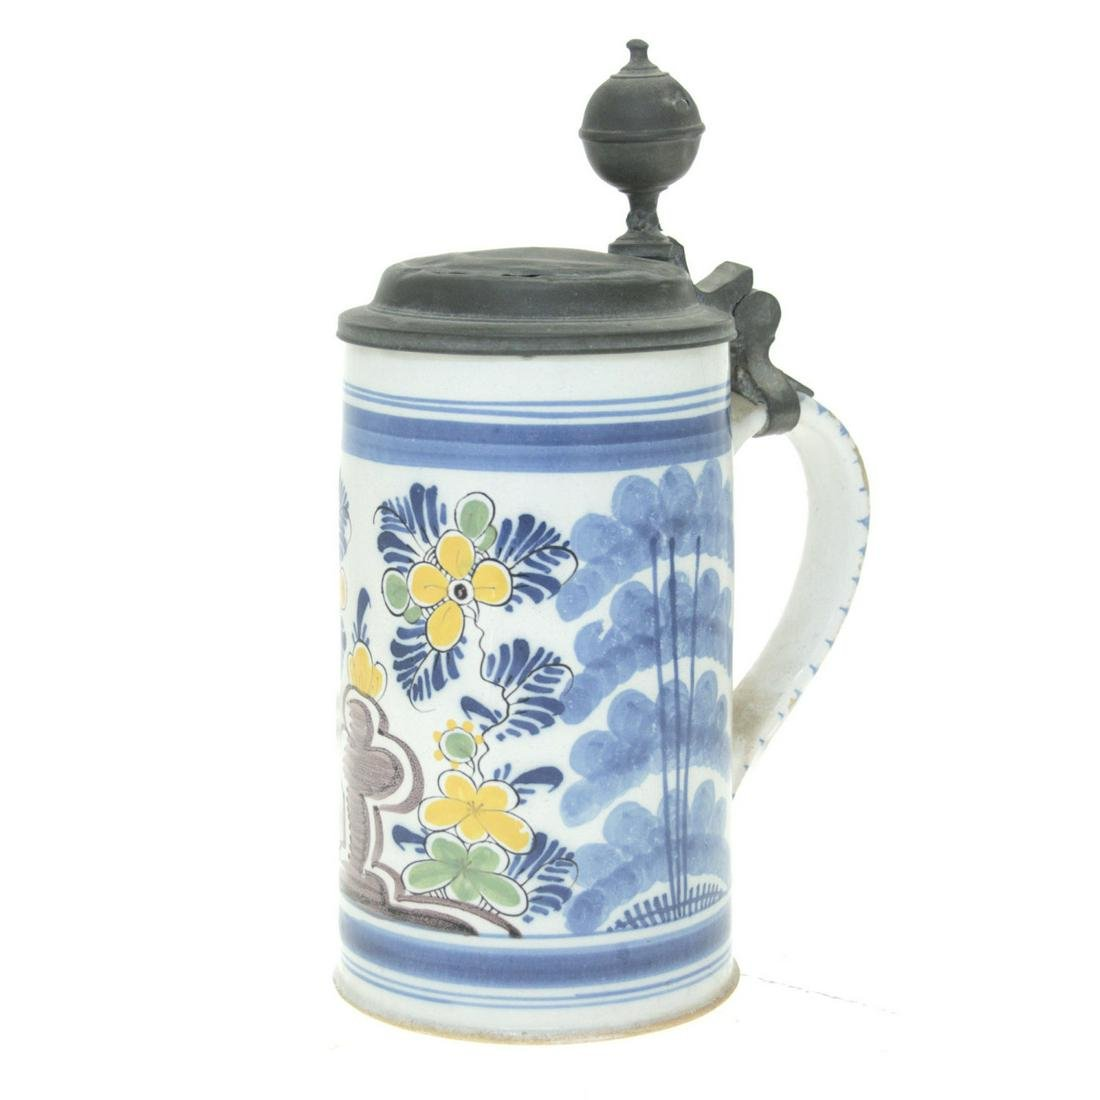 Antique German Faience Ceramic and Pewter Stein.